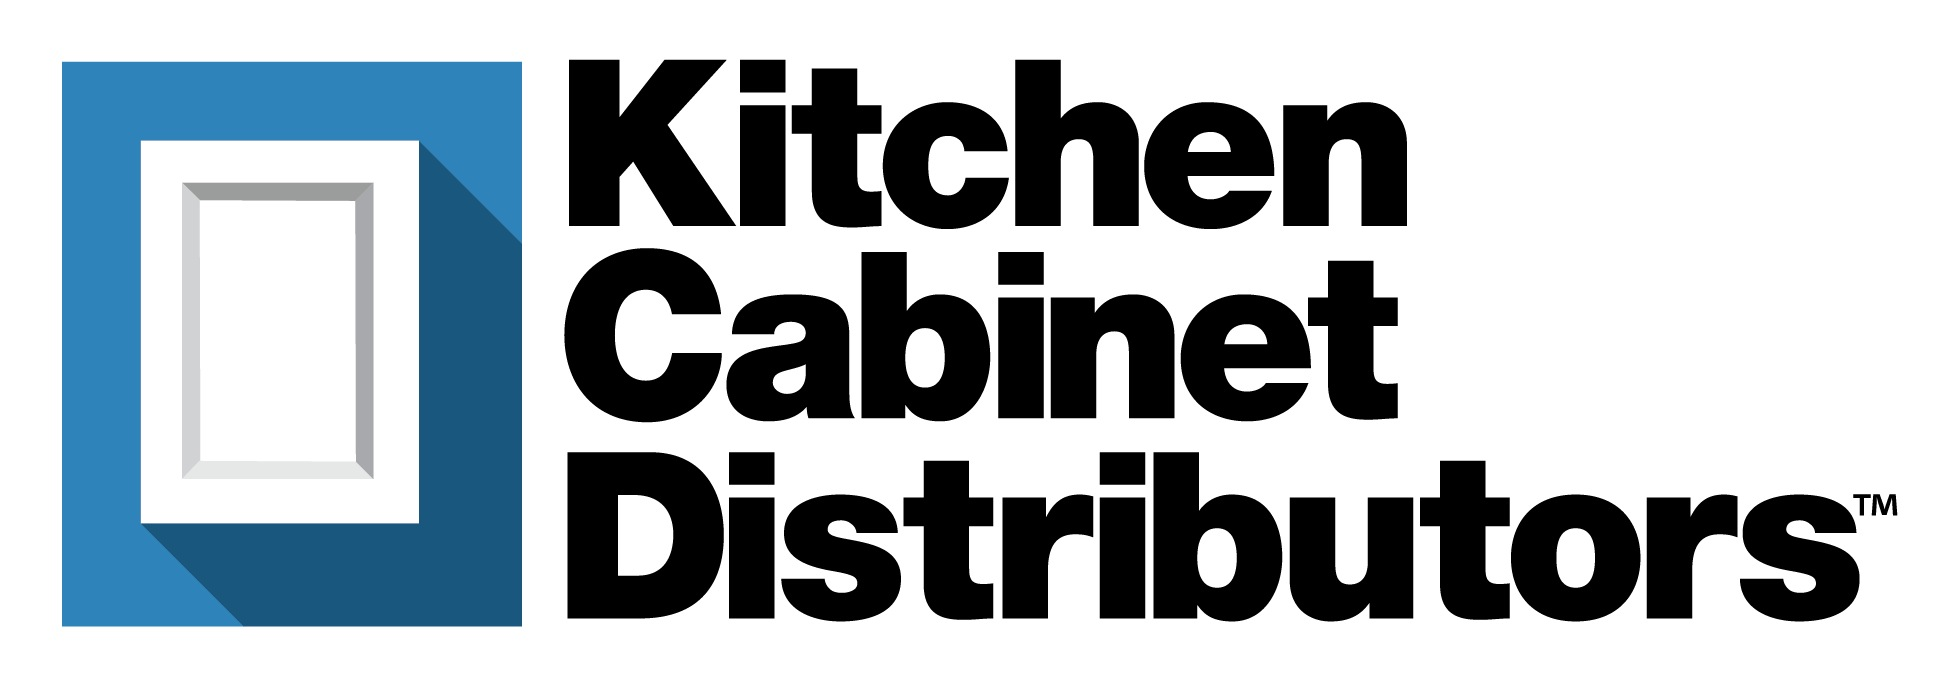 Kitchen Cabinet Distributors Selects Houston For New